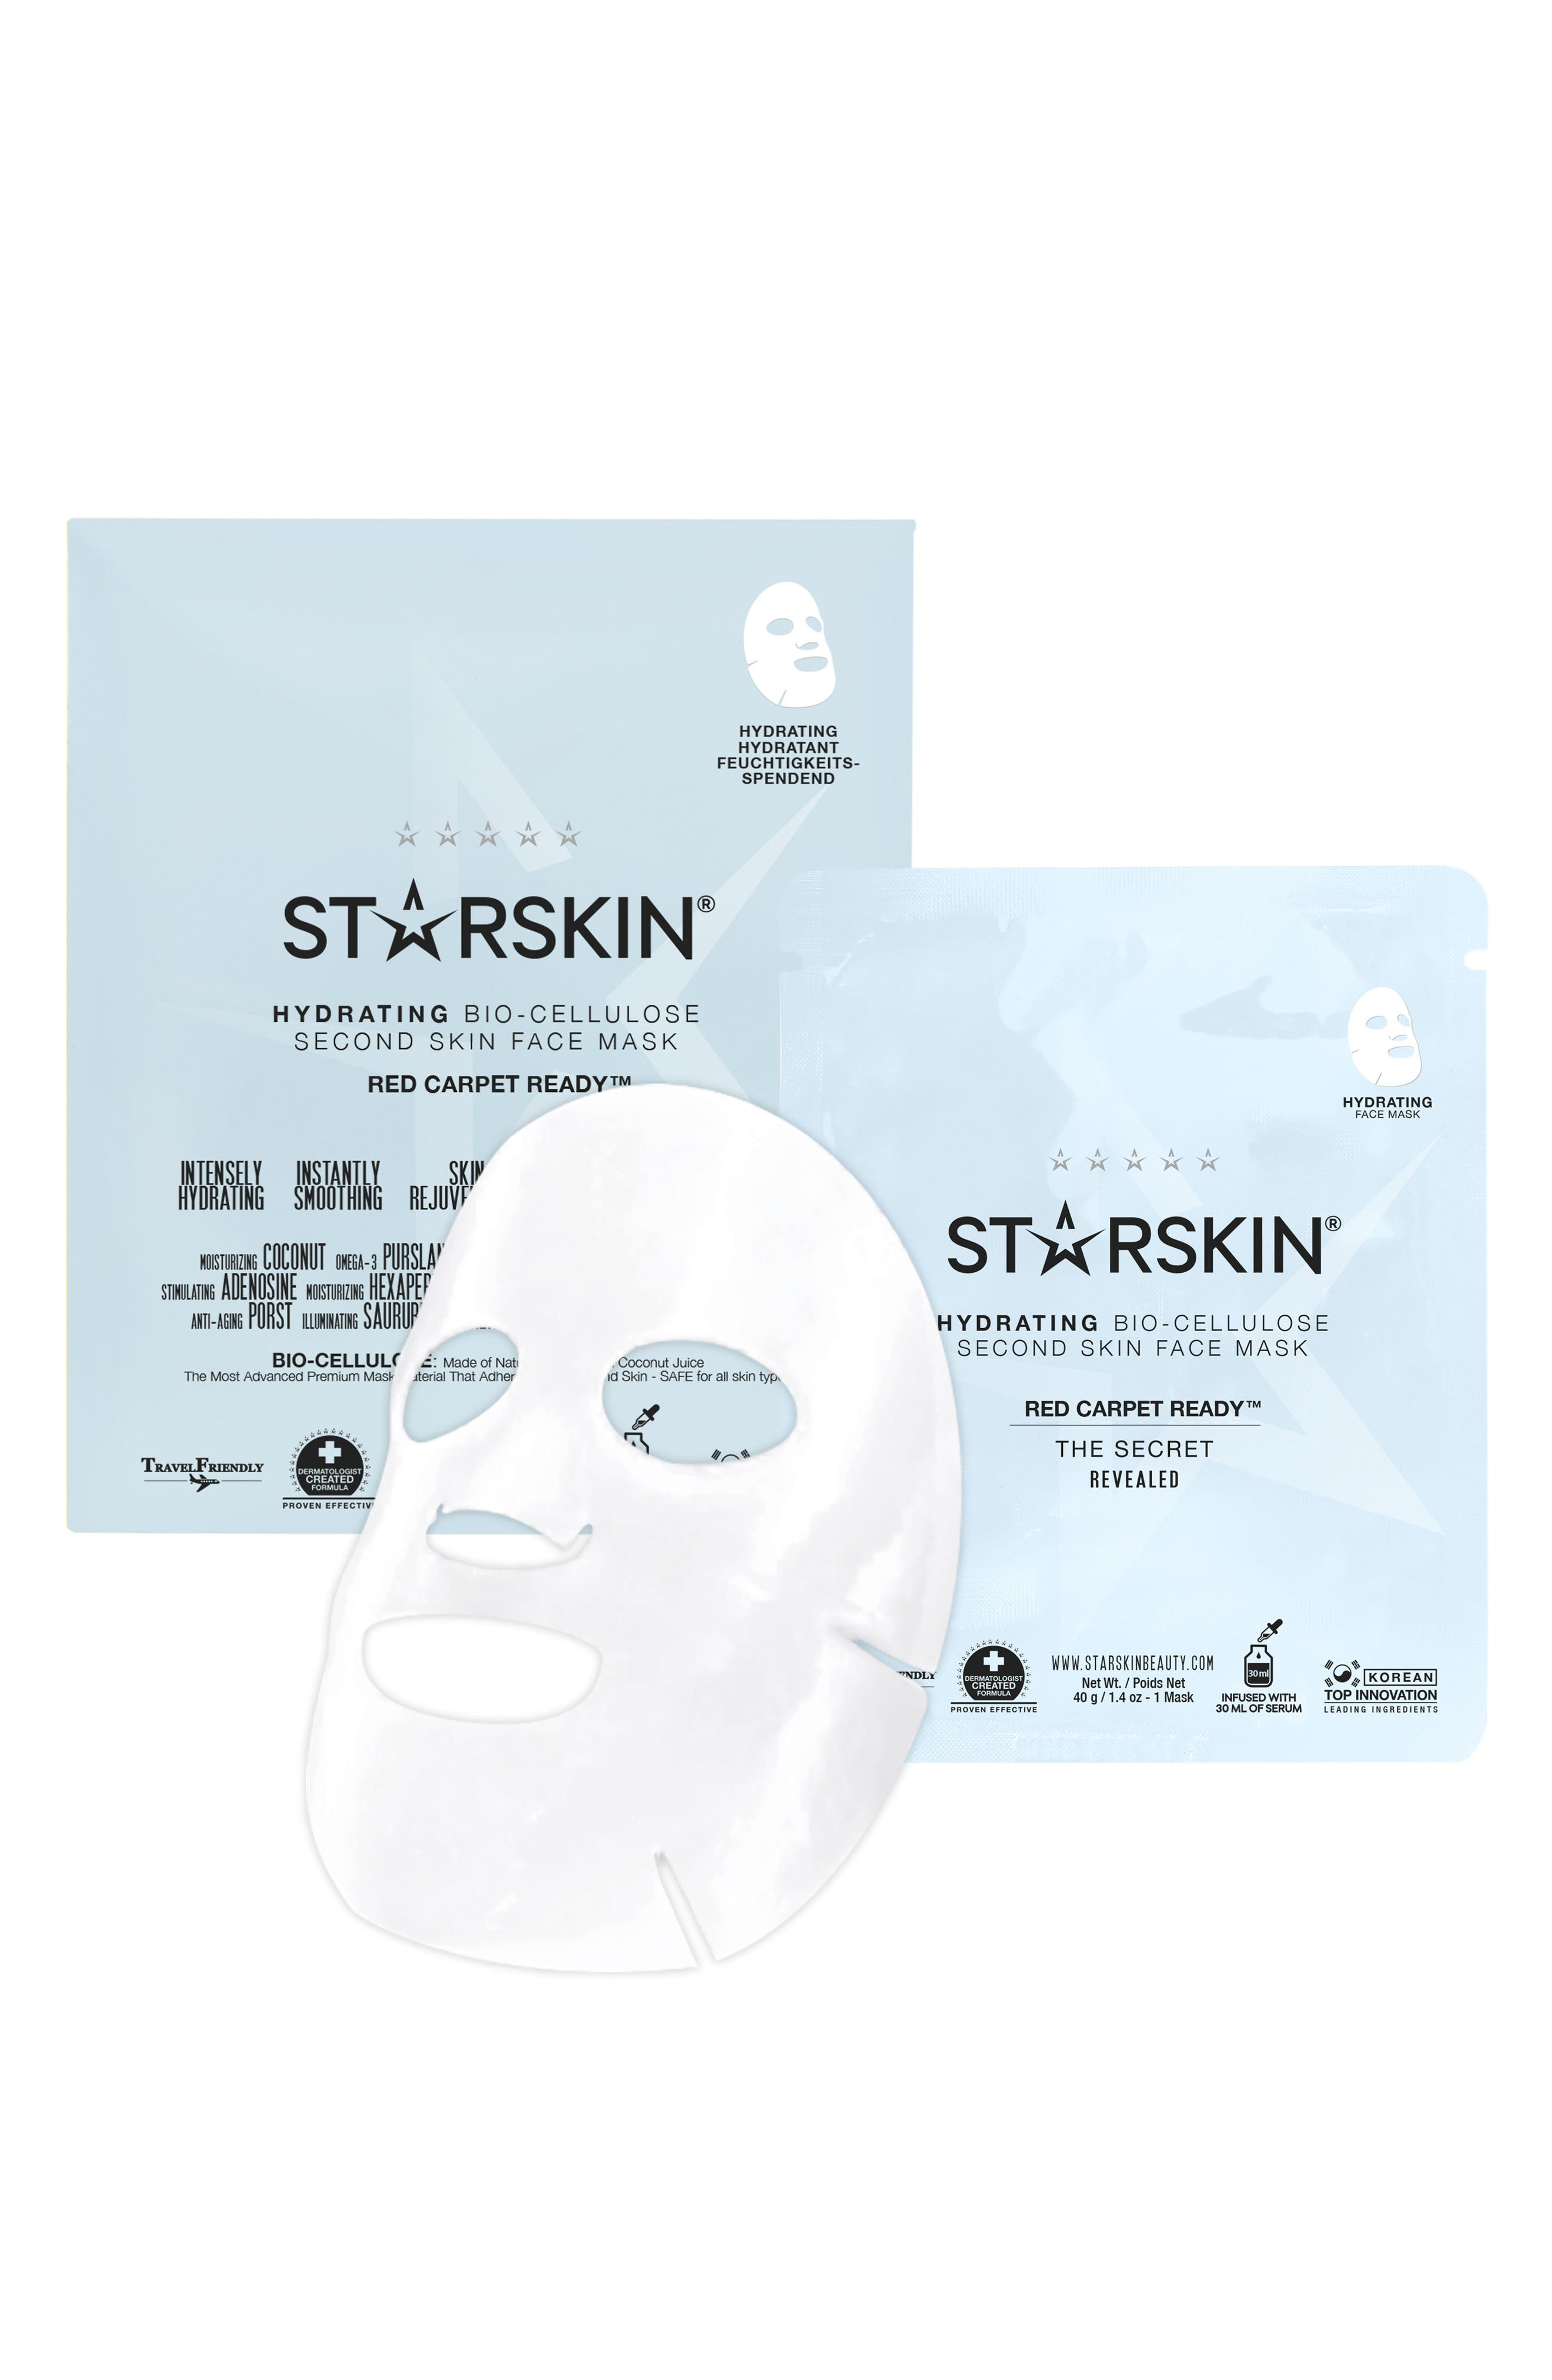 Red Carpet Ready Hydrating Bio-Cellulose Second Skin Face Mask,                             Main thumbnail 1, color,                             NO COLOR